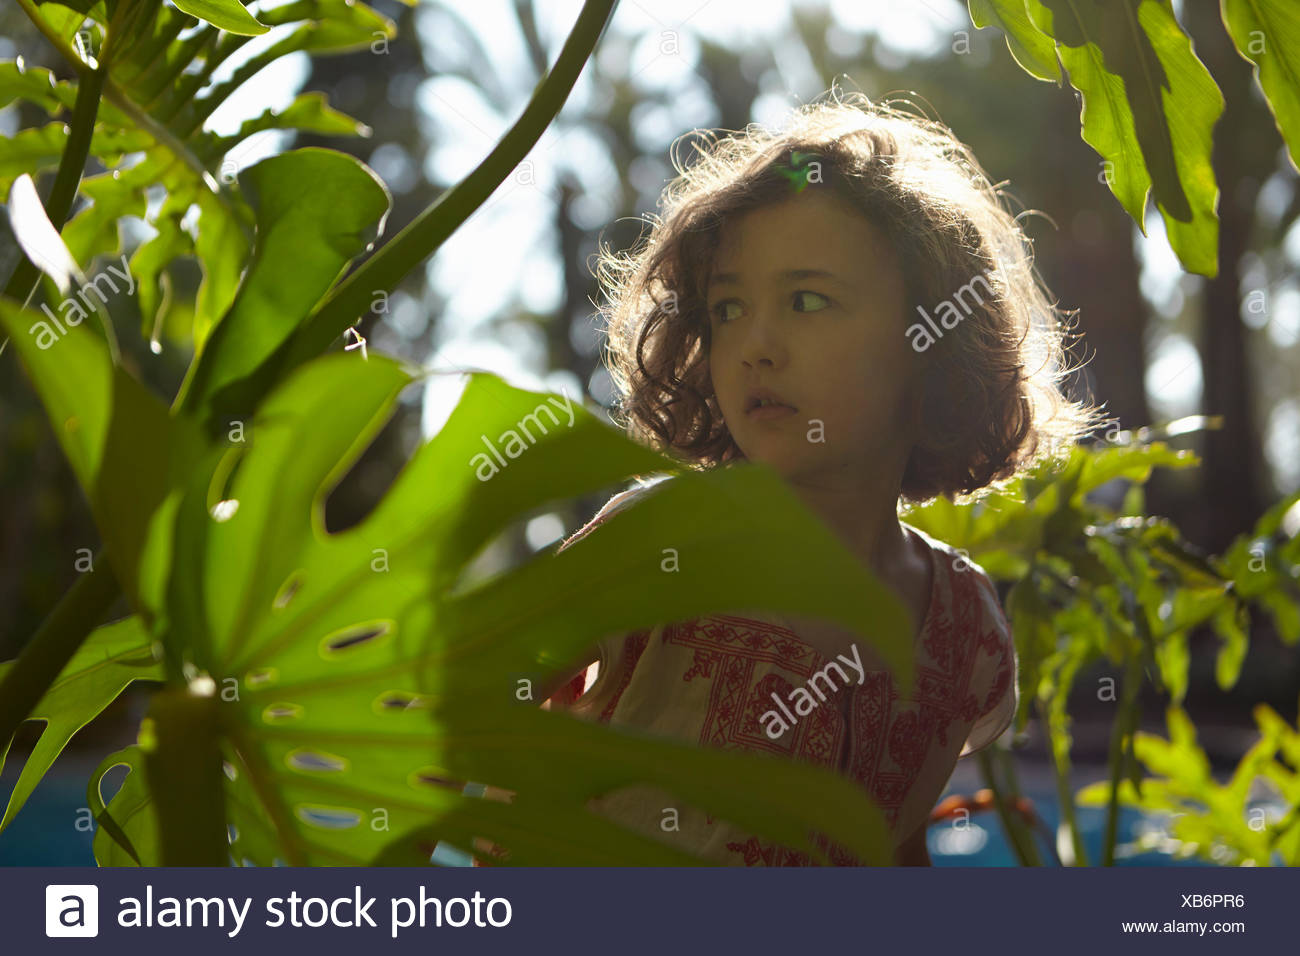 Young girl, worried expression, standing amongst foliage - Stock Image